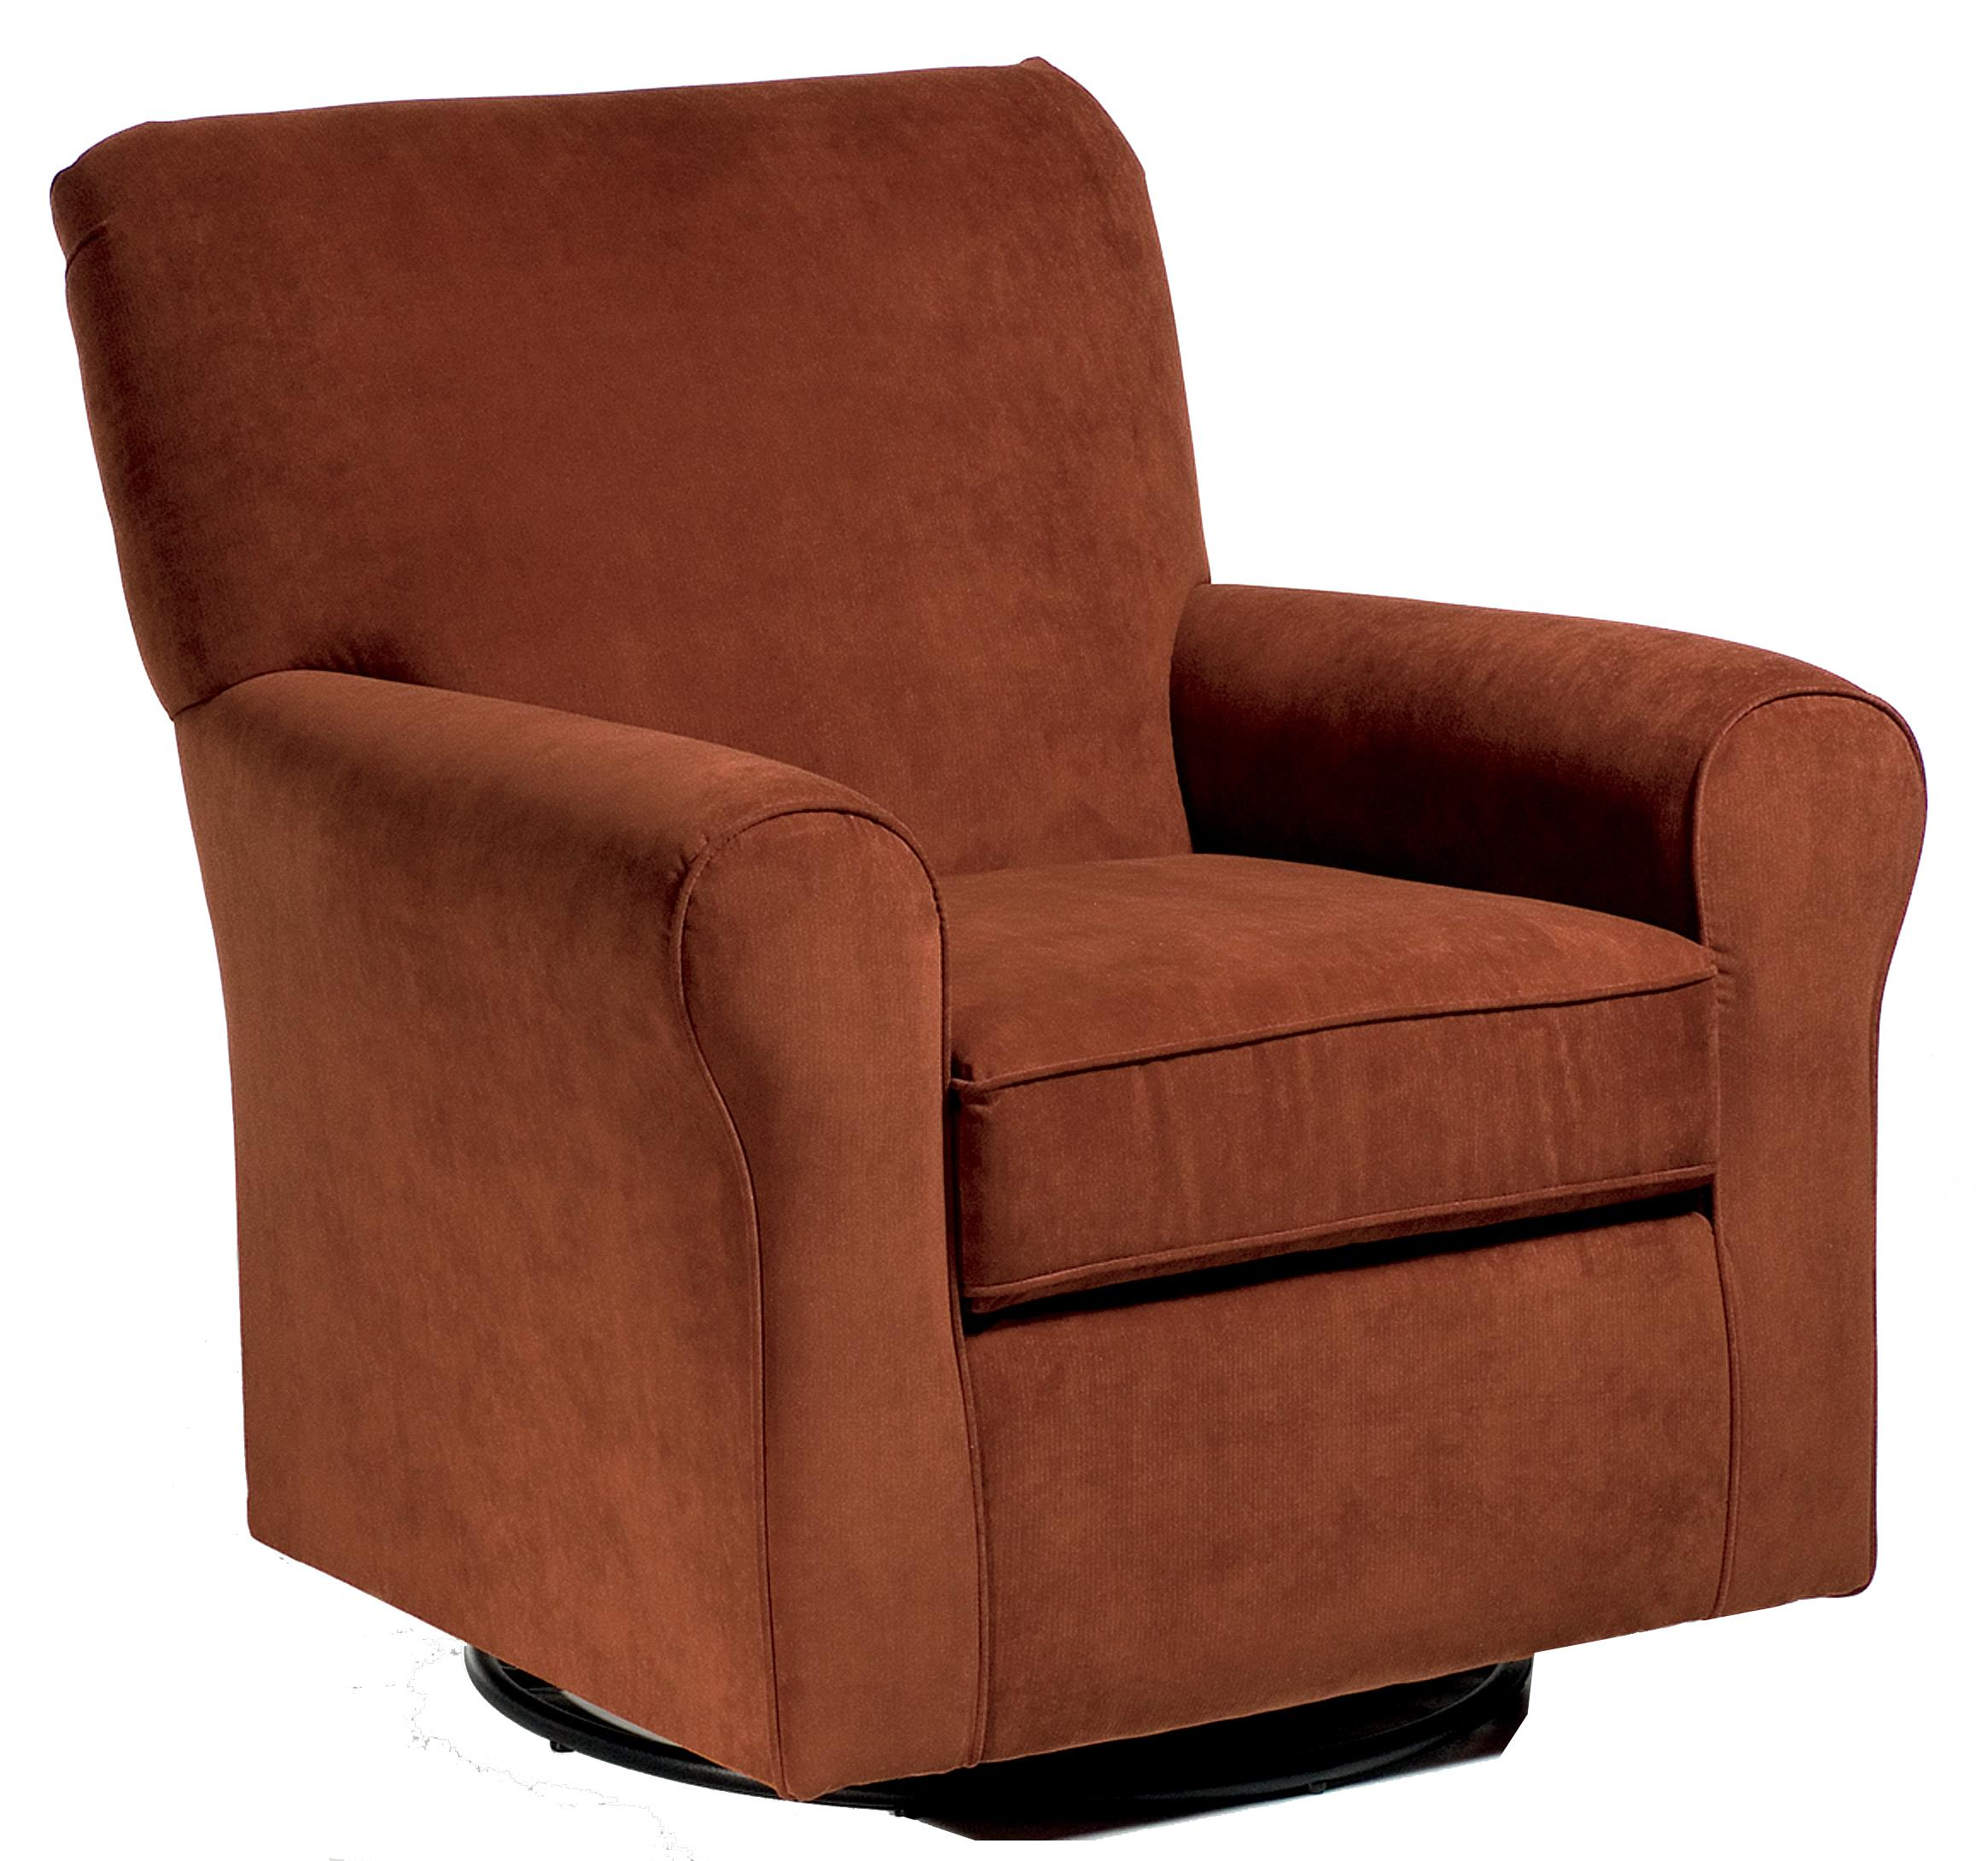 Storytime Swivel Chairs and Ottomans Hagen Chair by Best Chairs Storytime Series at Best Home Furnishings